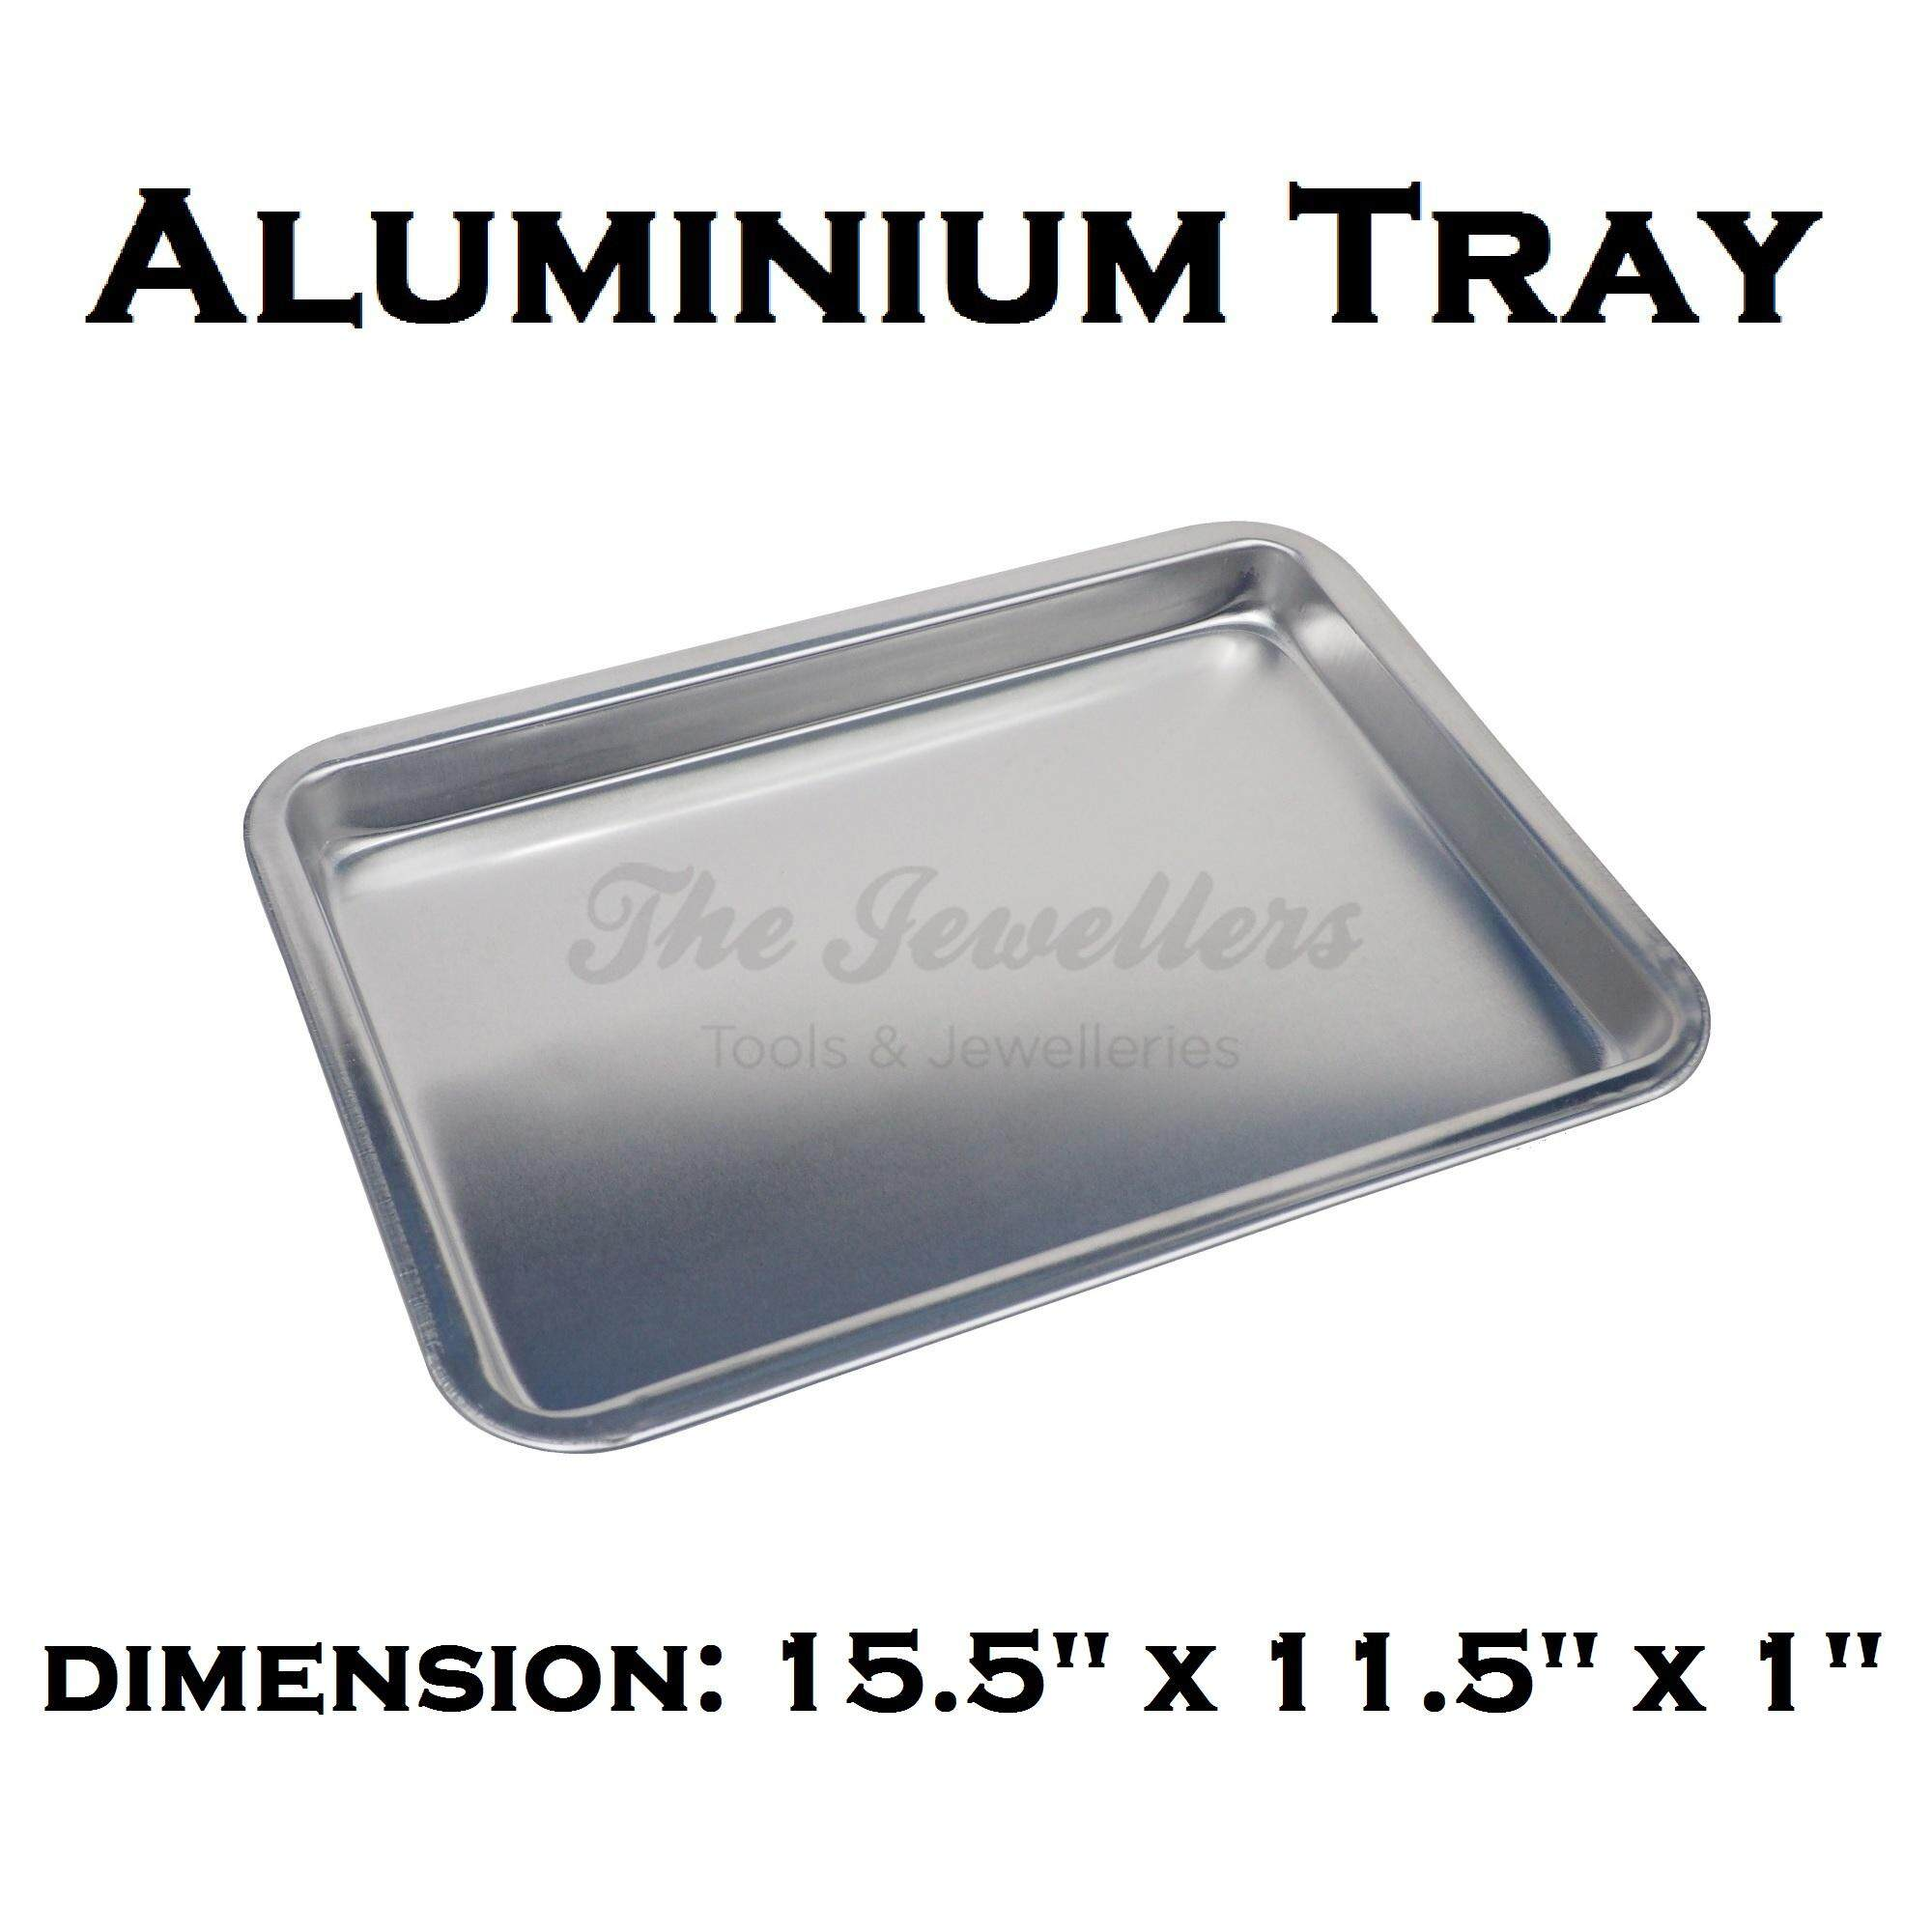 Aluminium Tray Bakeware Oven Sheet, Baking Pan Tray for Cookies, Pizza, and Cakes Dimension: 15.5